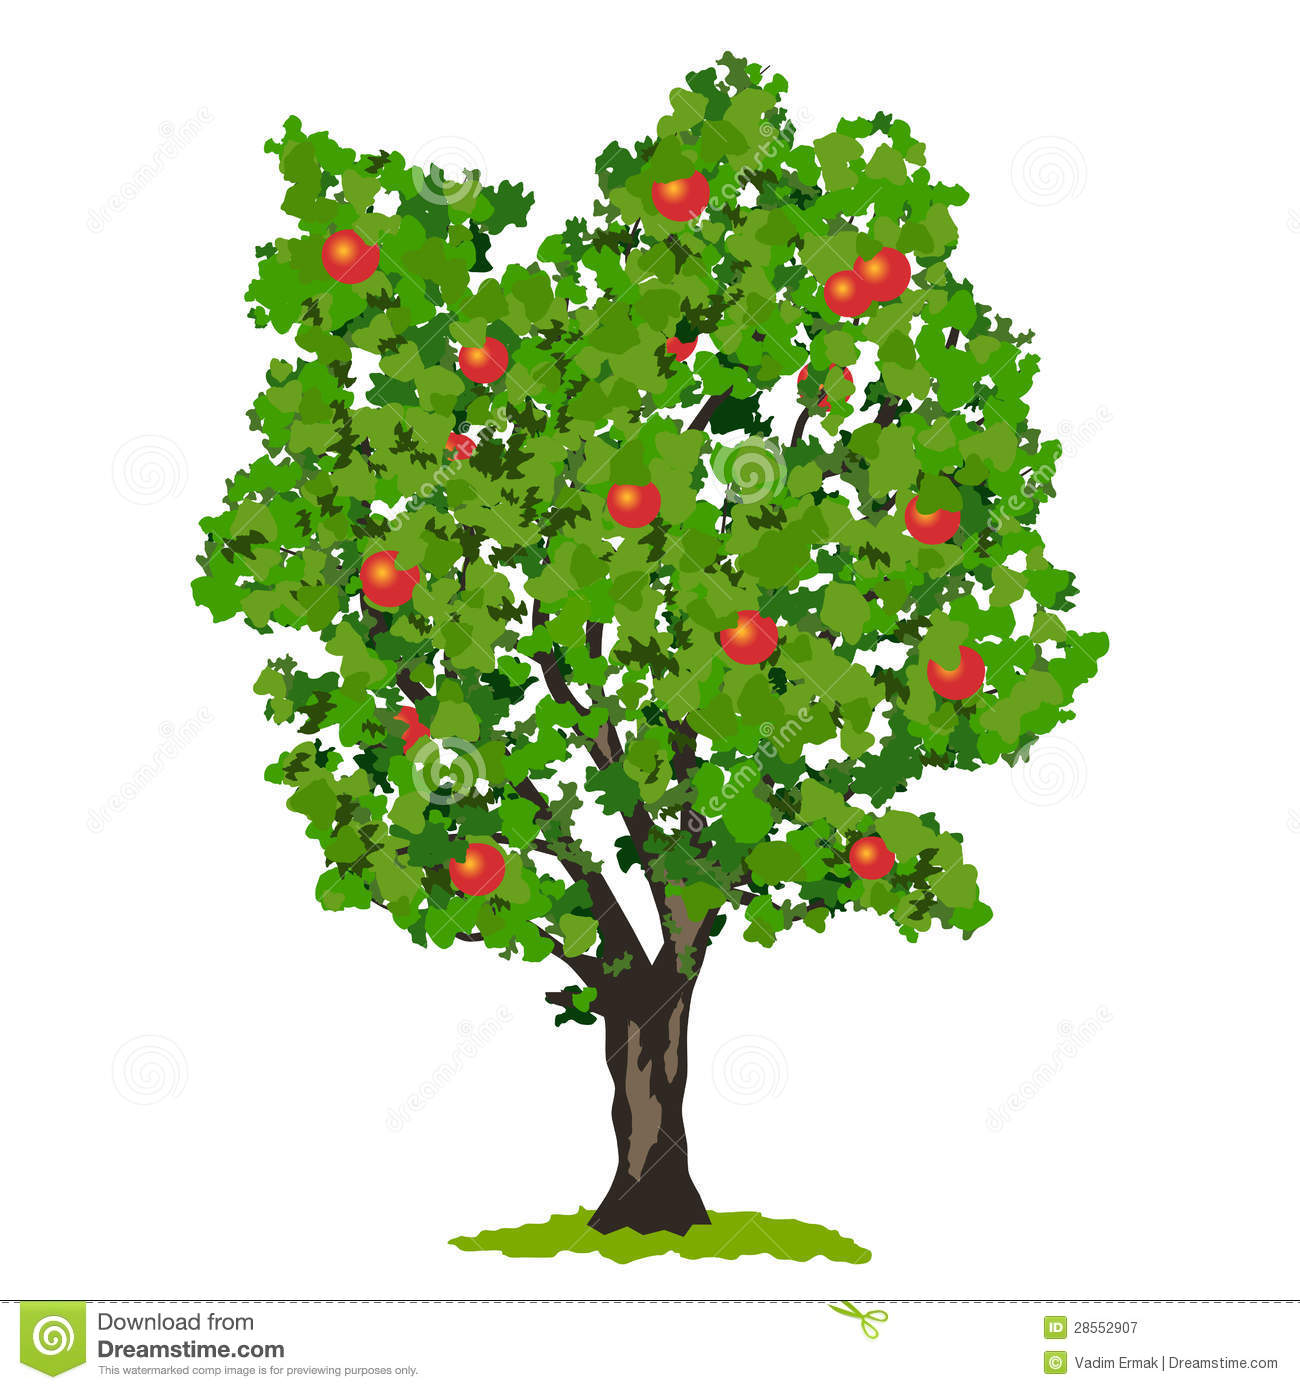 Apple Tree Illustration Royalty Free Stock Photography - Image ...